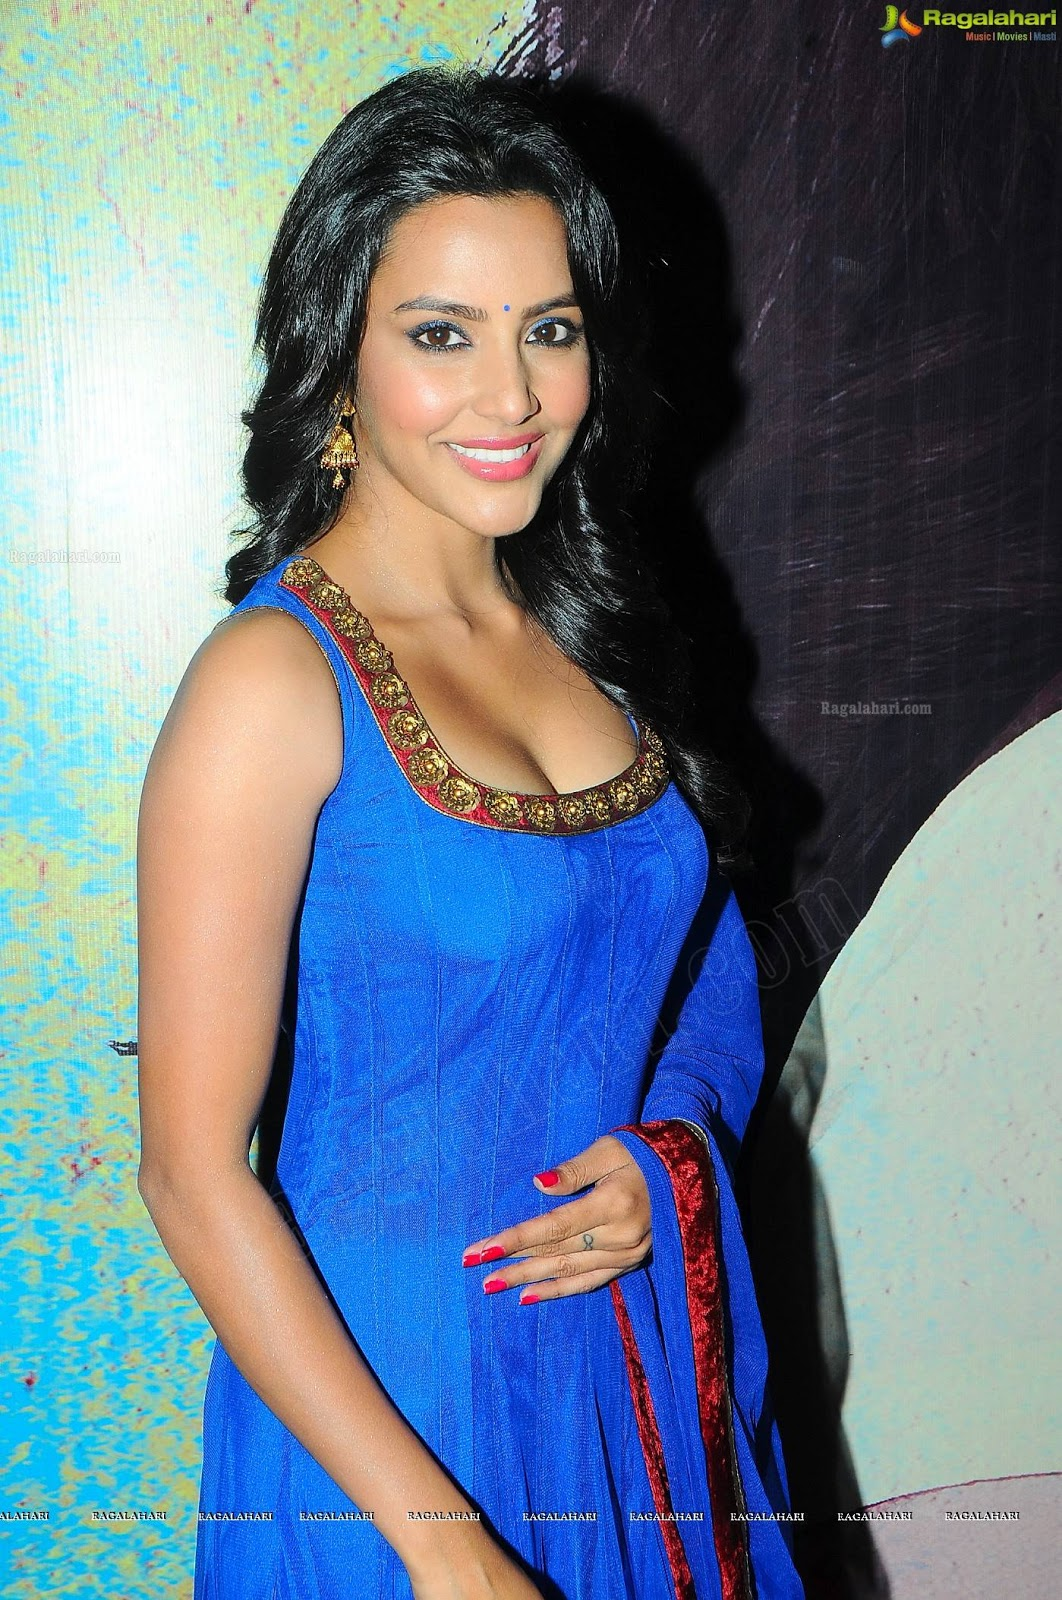 Priya Anand In Blue Churidar Hot Photos  Bollywood -7188